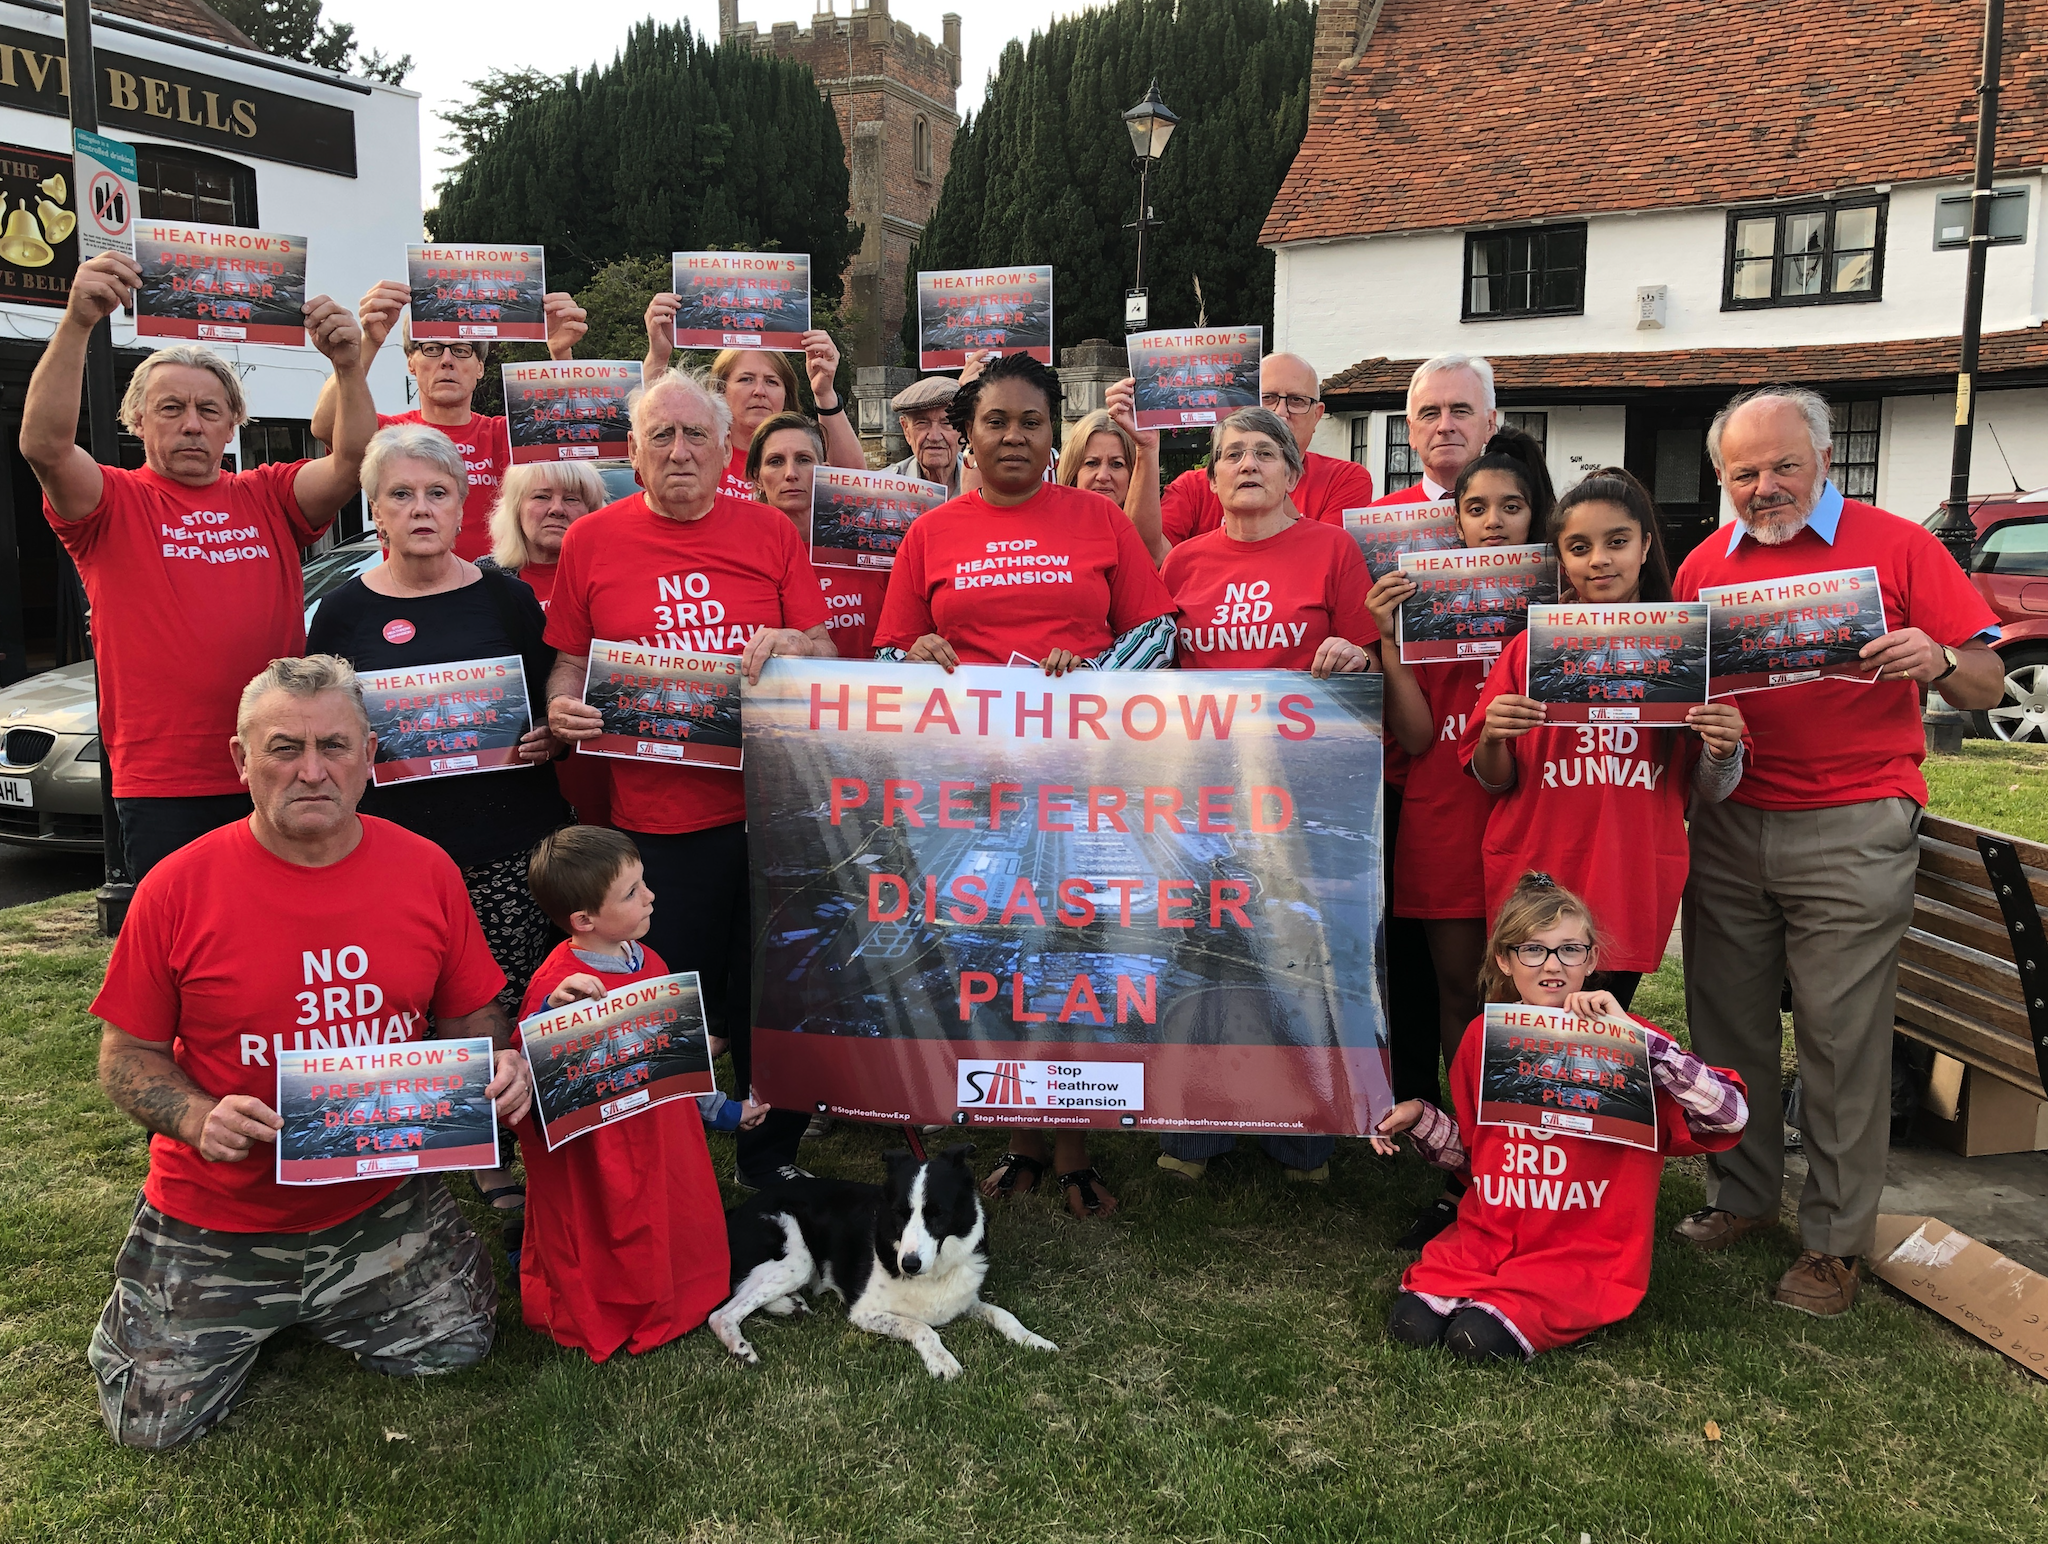 Local residents were joined by John McDonnell MP to launch the 'Heathrow's Preferred Disasterplan' campaign